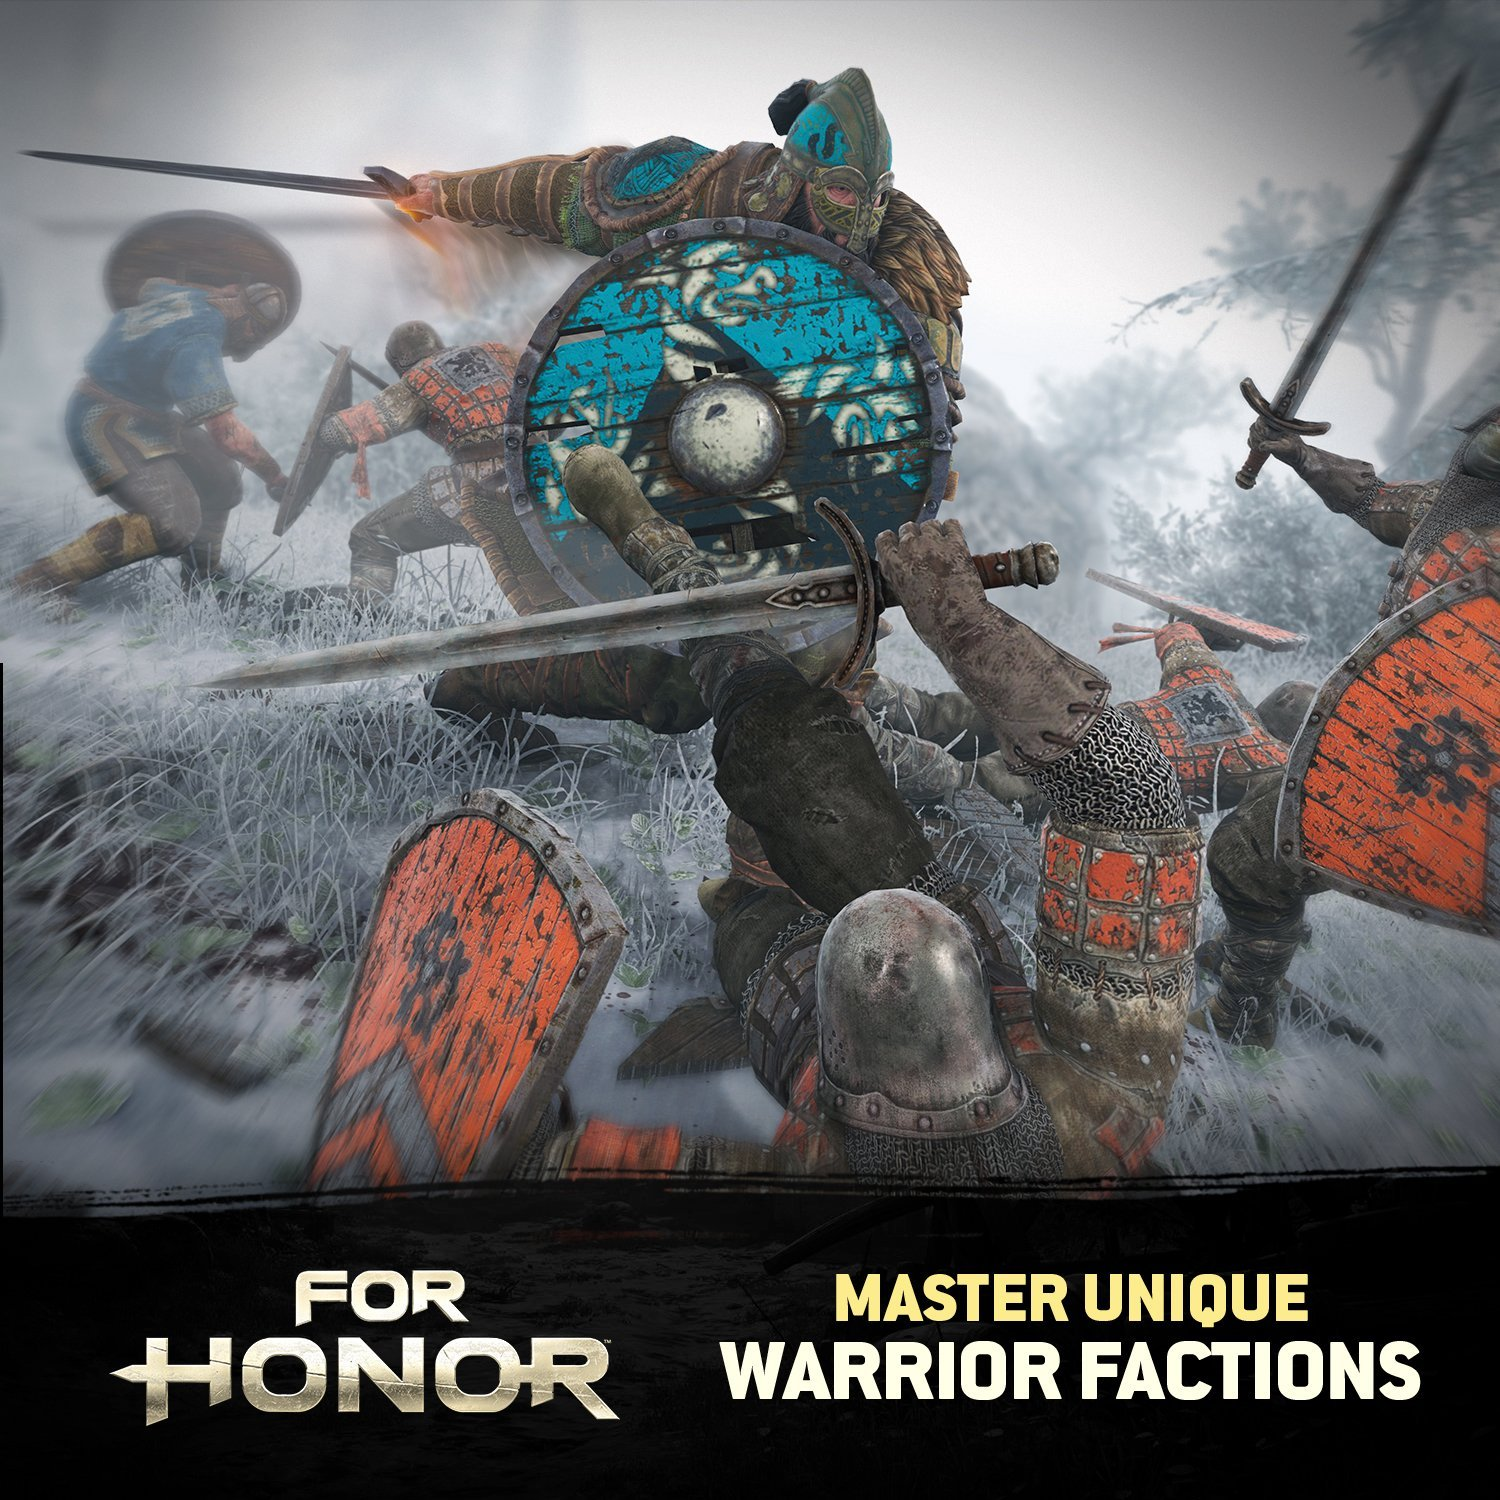 For Honor (Uplay KEY)